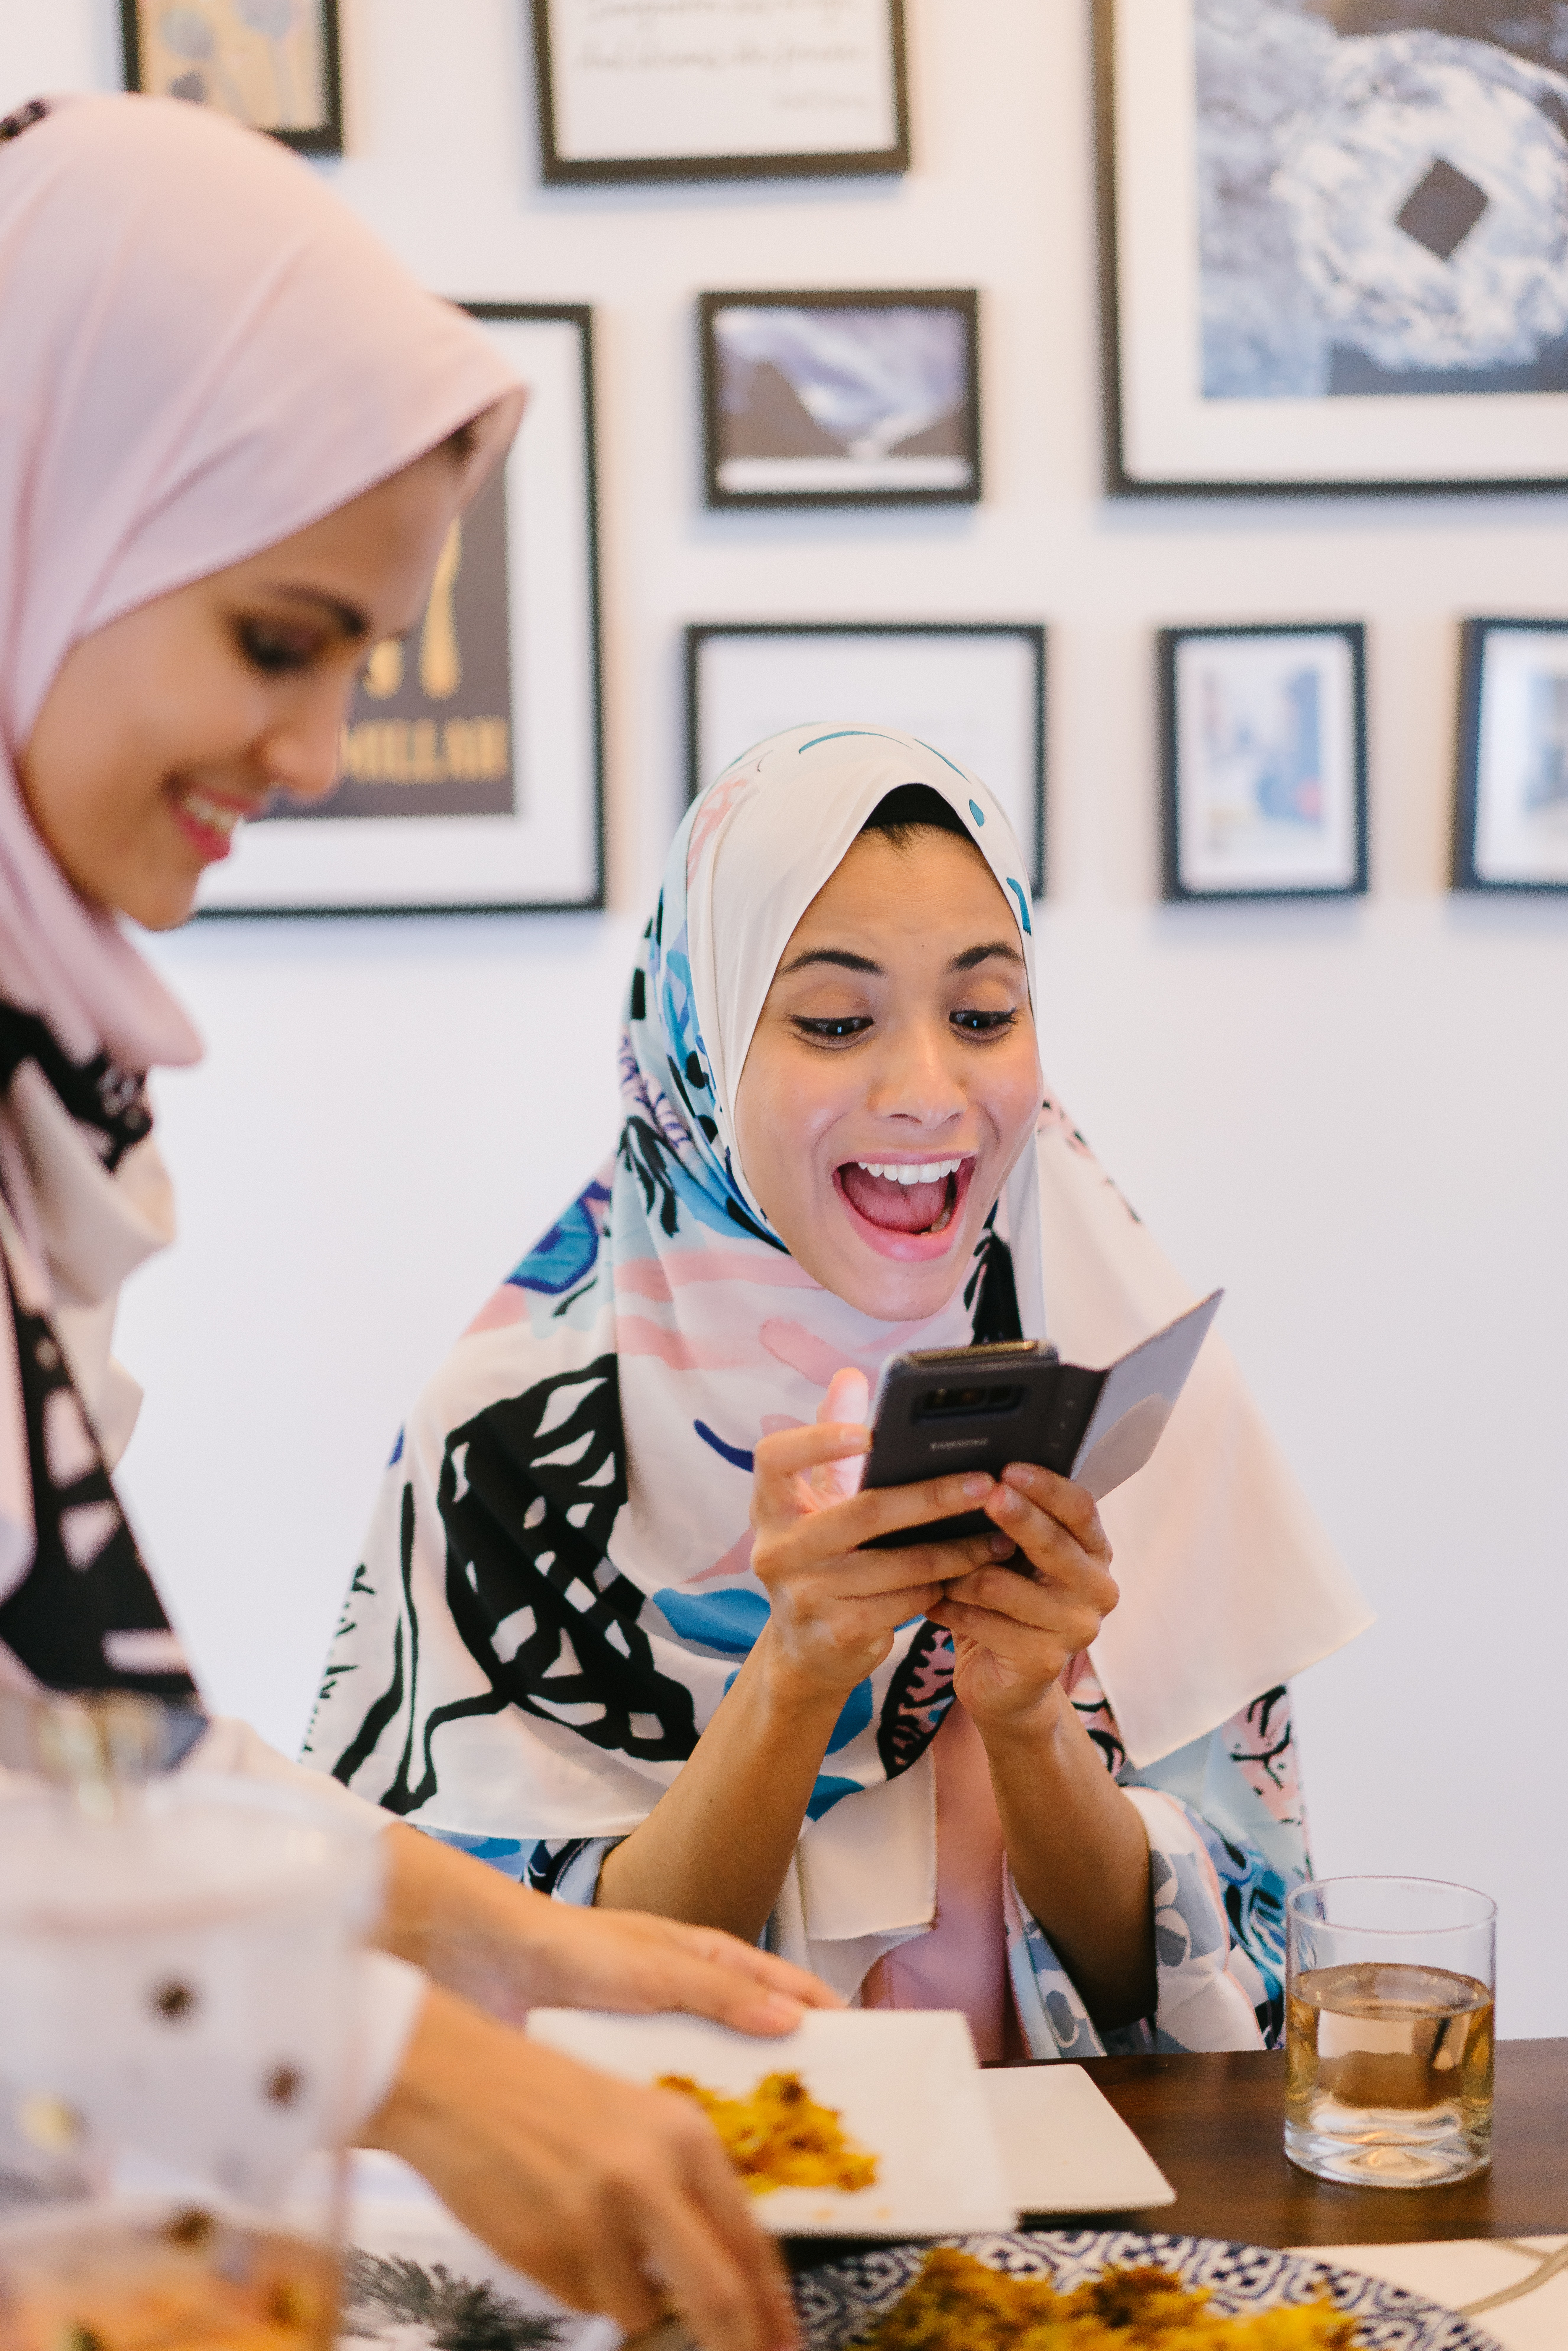 Top Ramadan deals and coupon codes to brighten your quarantine mood